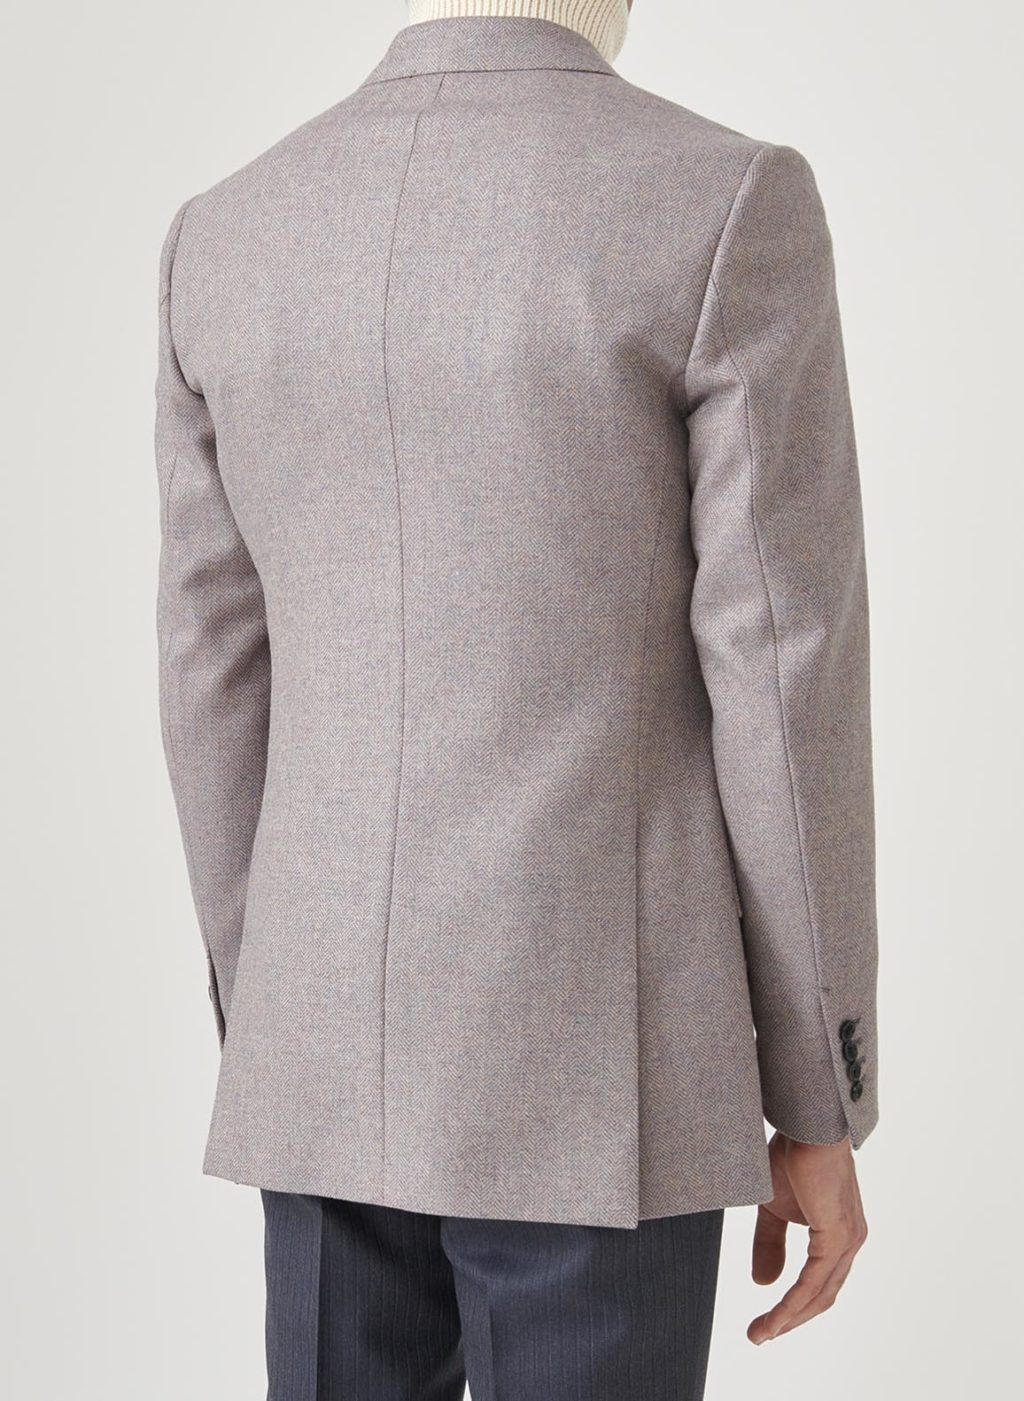 double-breasted jacket in slecked lavender